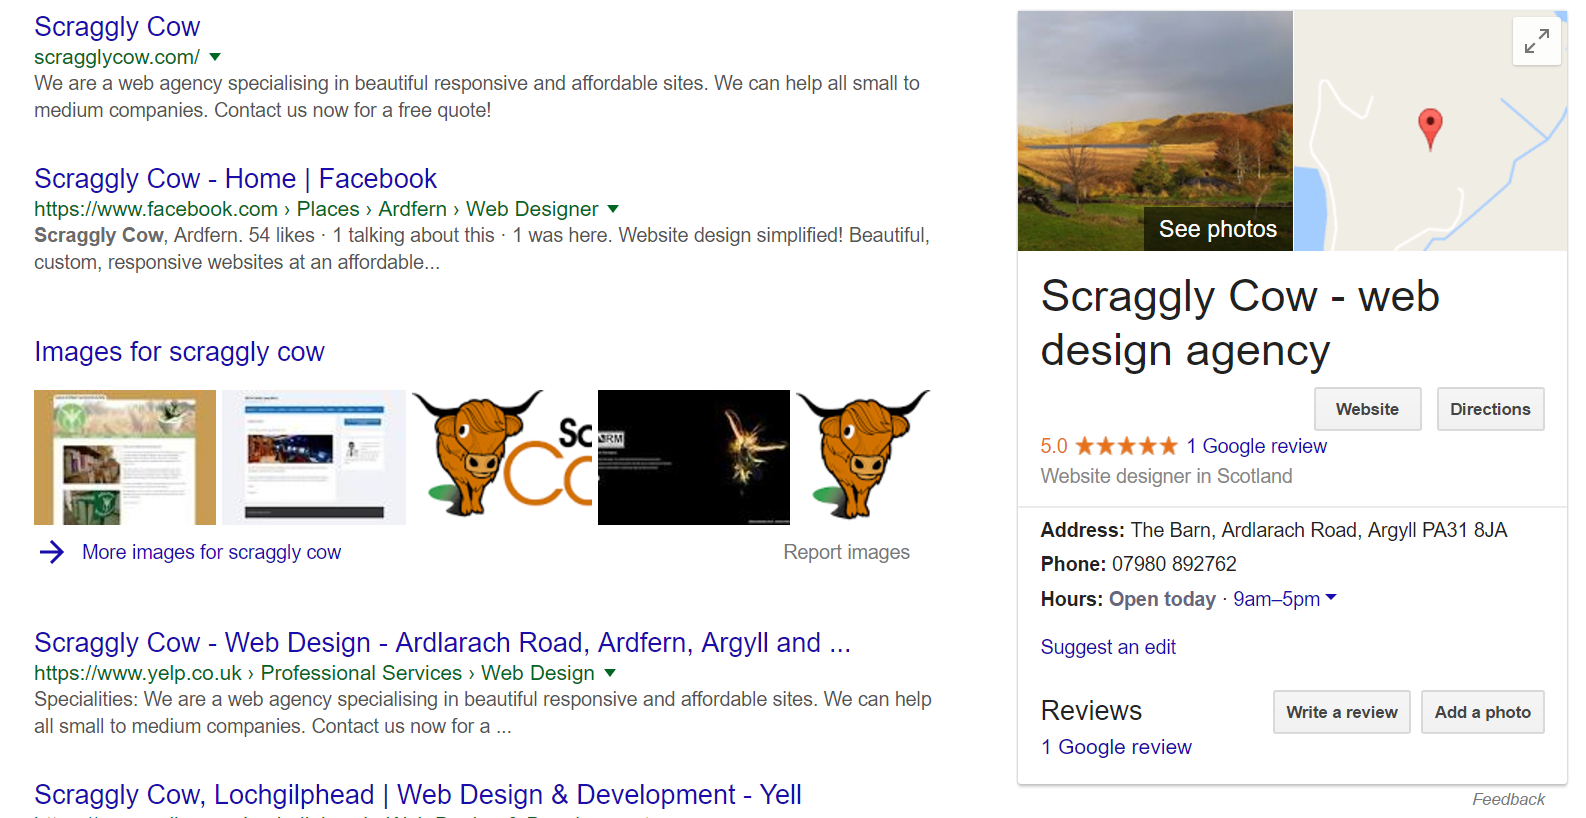 Free Google Business Listing - Scraggly Cow - Argyll Web Design